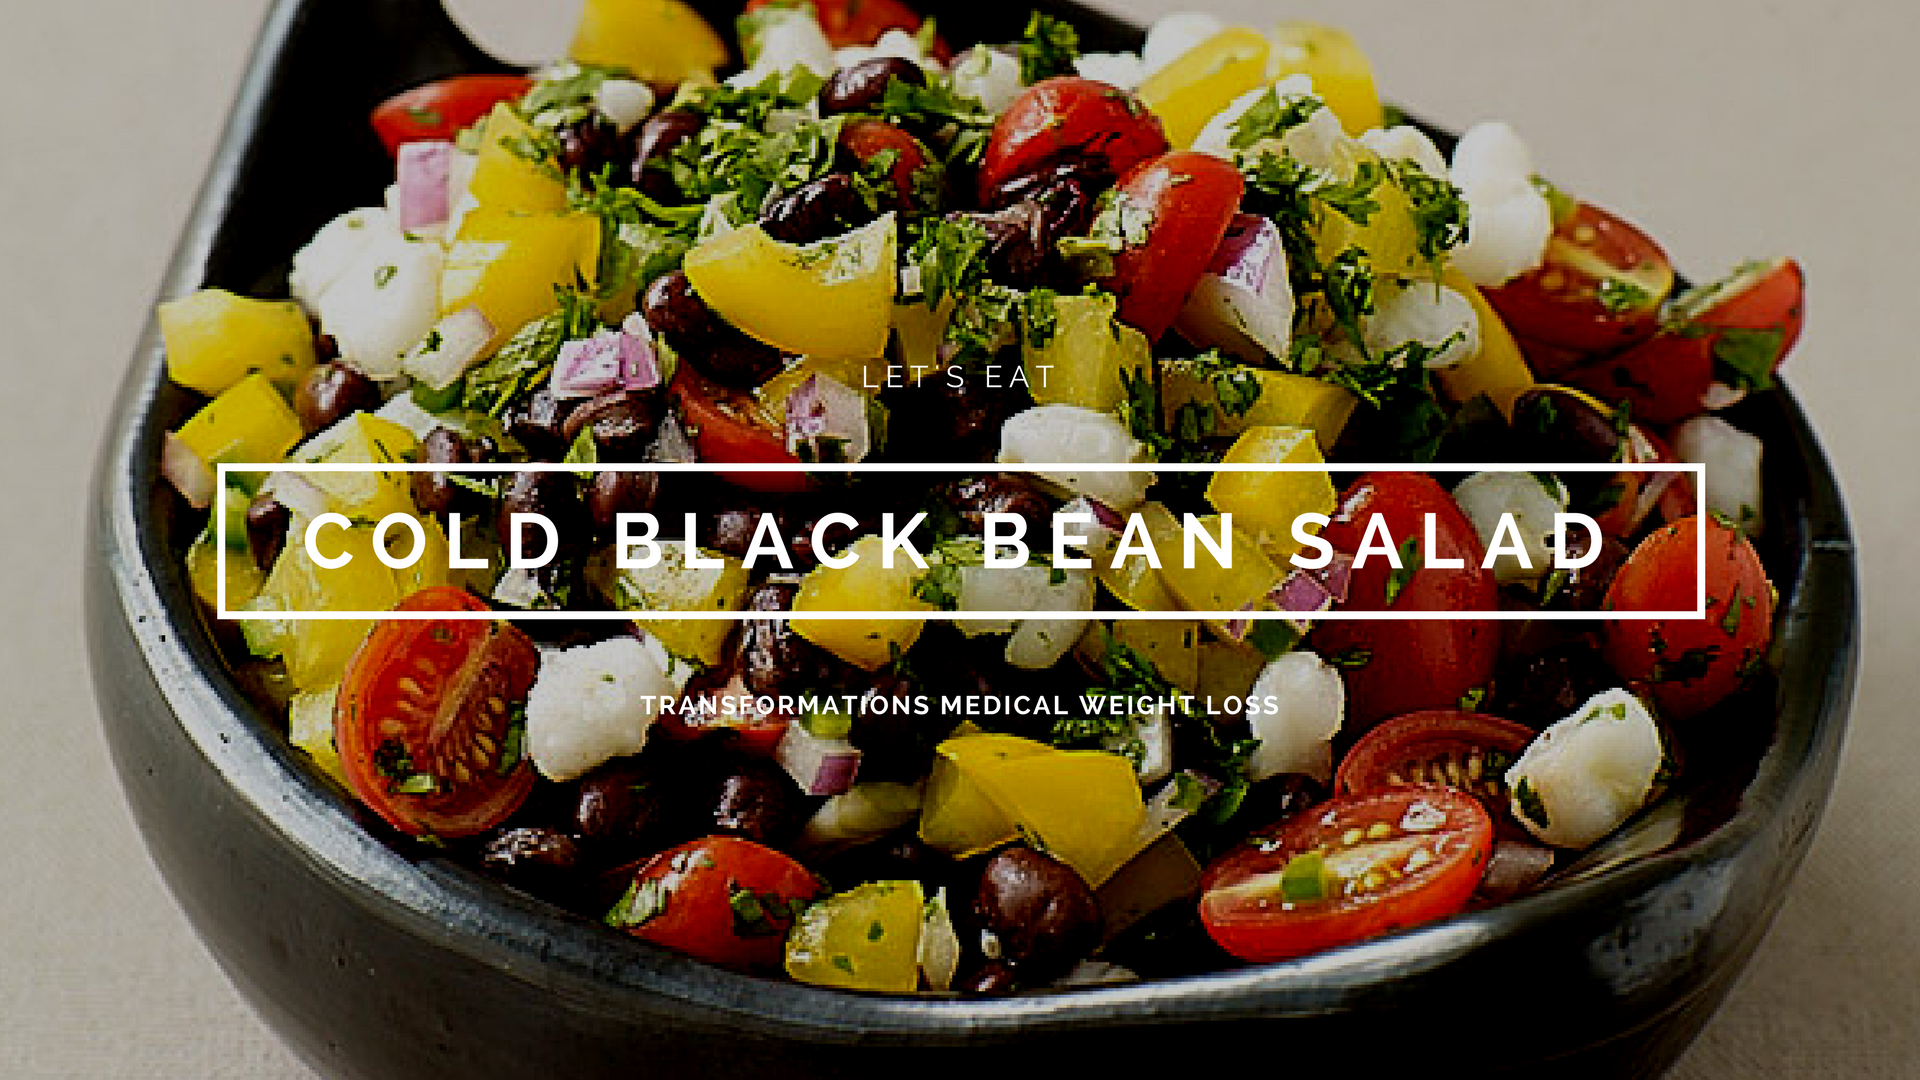 Cold Black Bean Salad